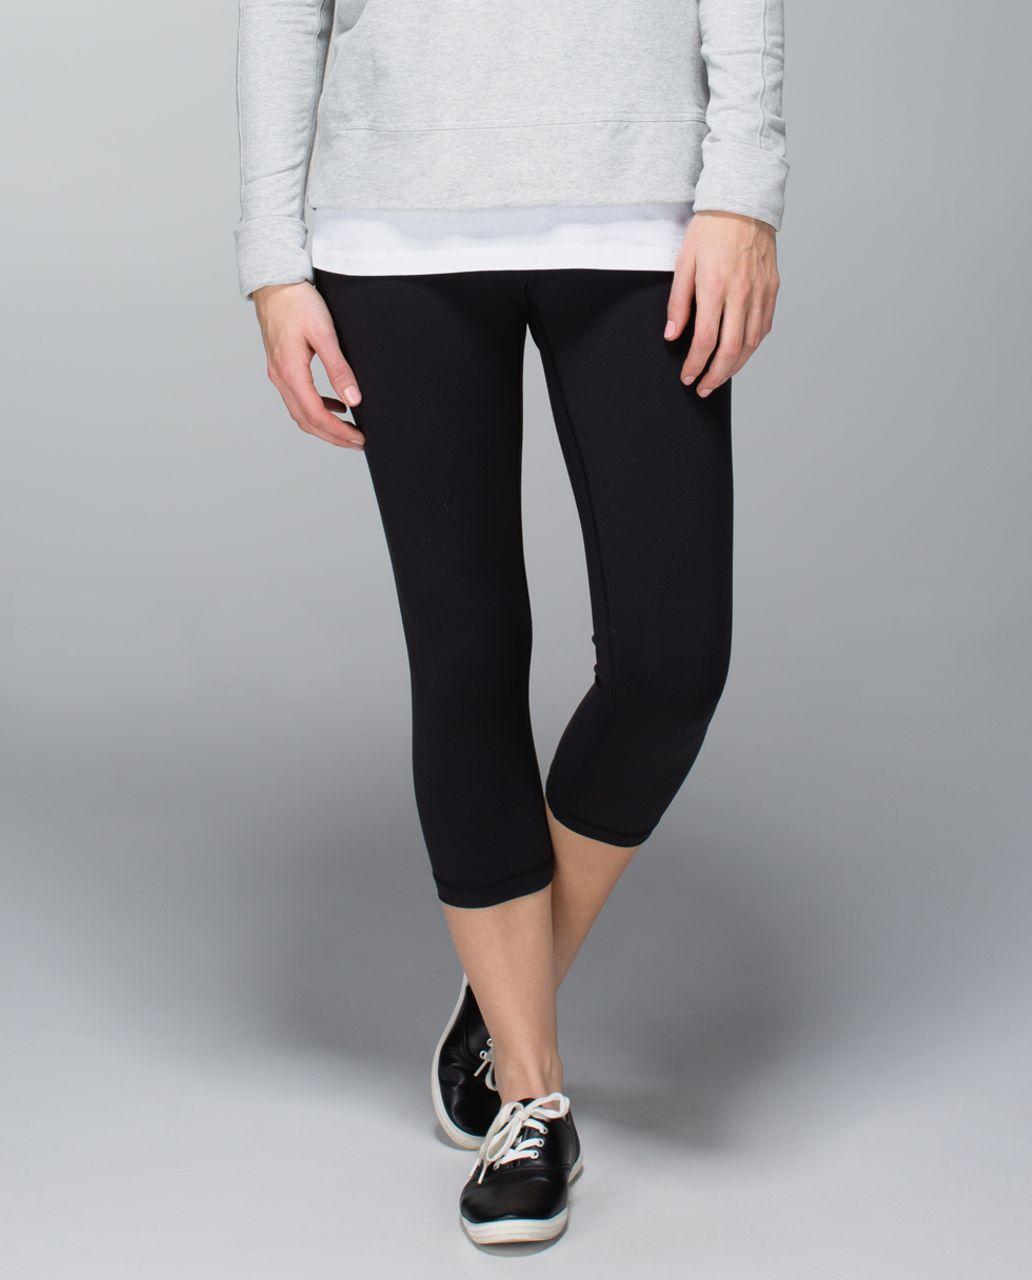 Lululemon Wunder Under Crop *Full-On Luxtreme - Black